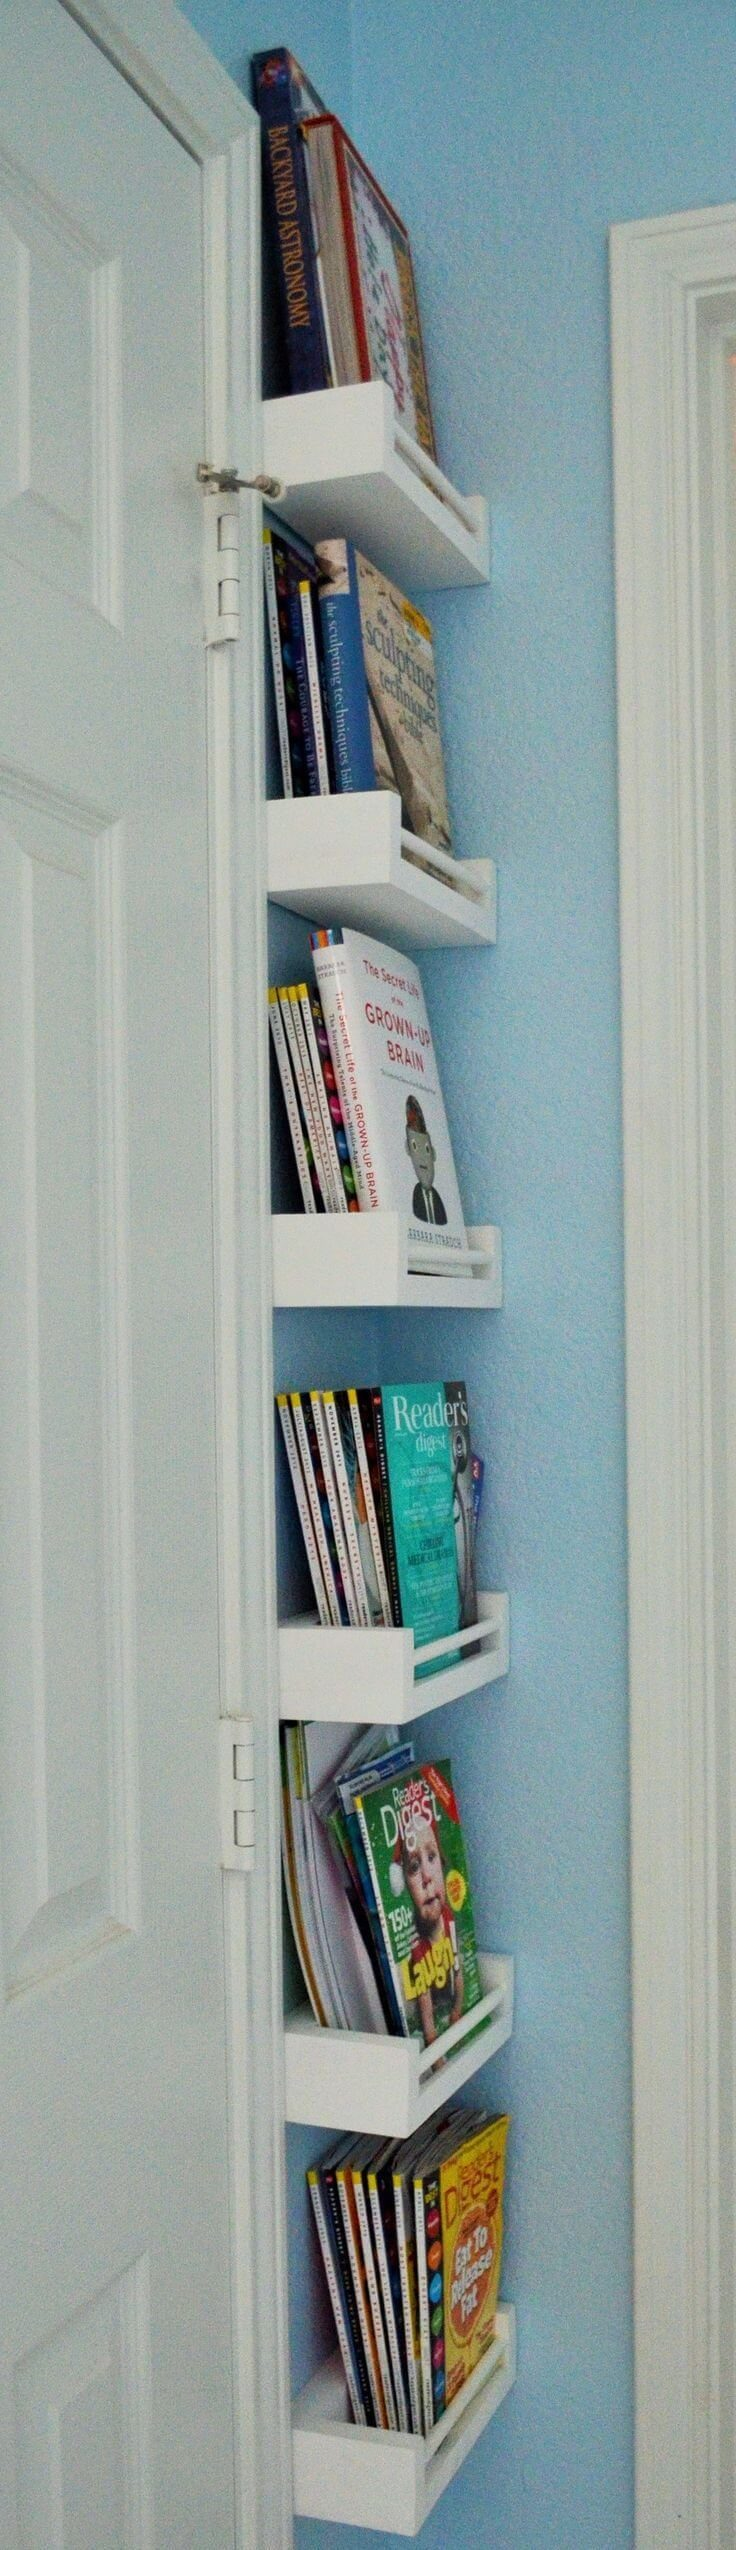 The Old Fashioned Magazine Rack Revolutionized